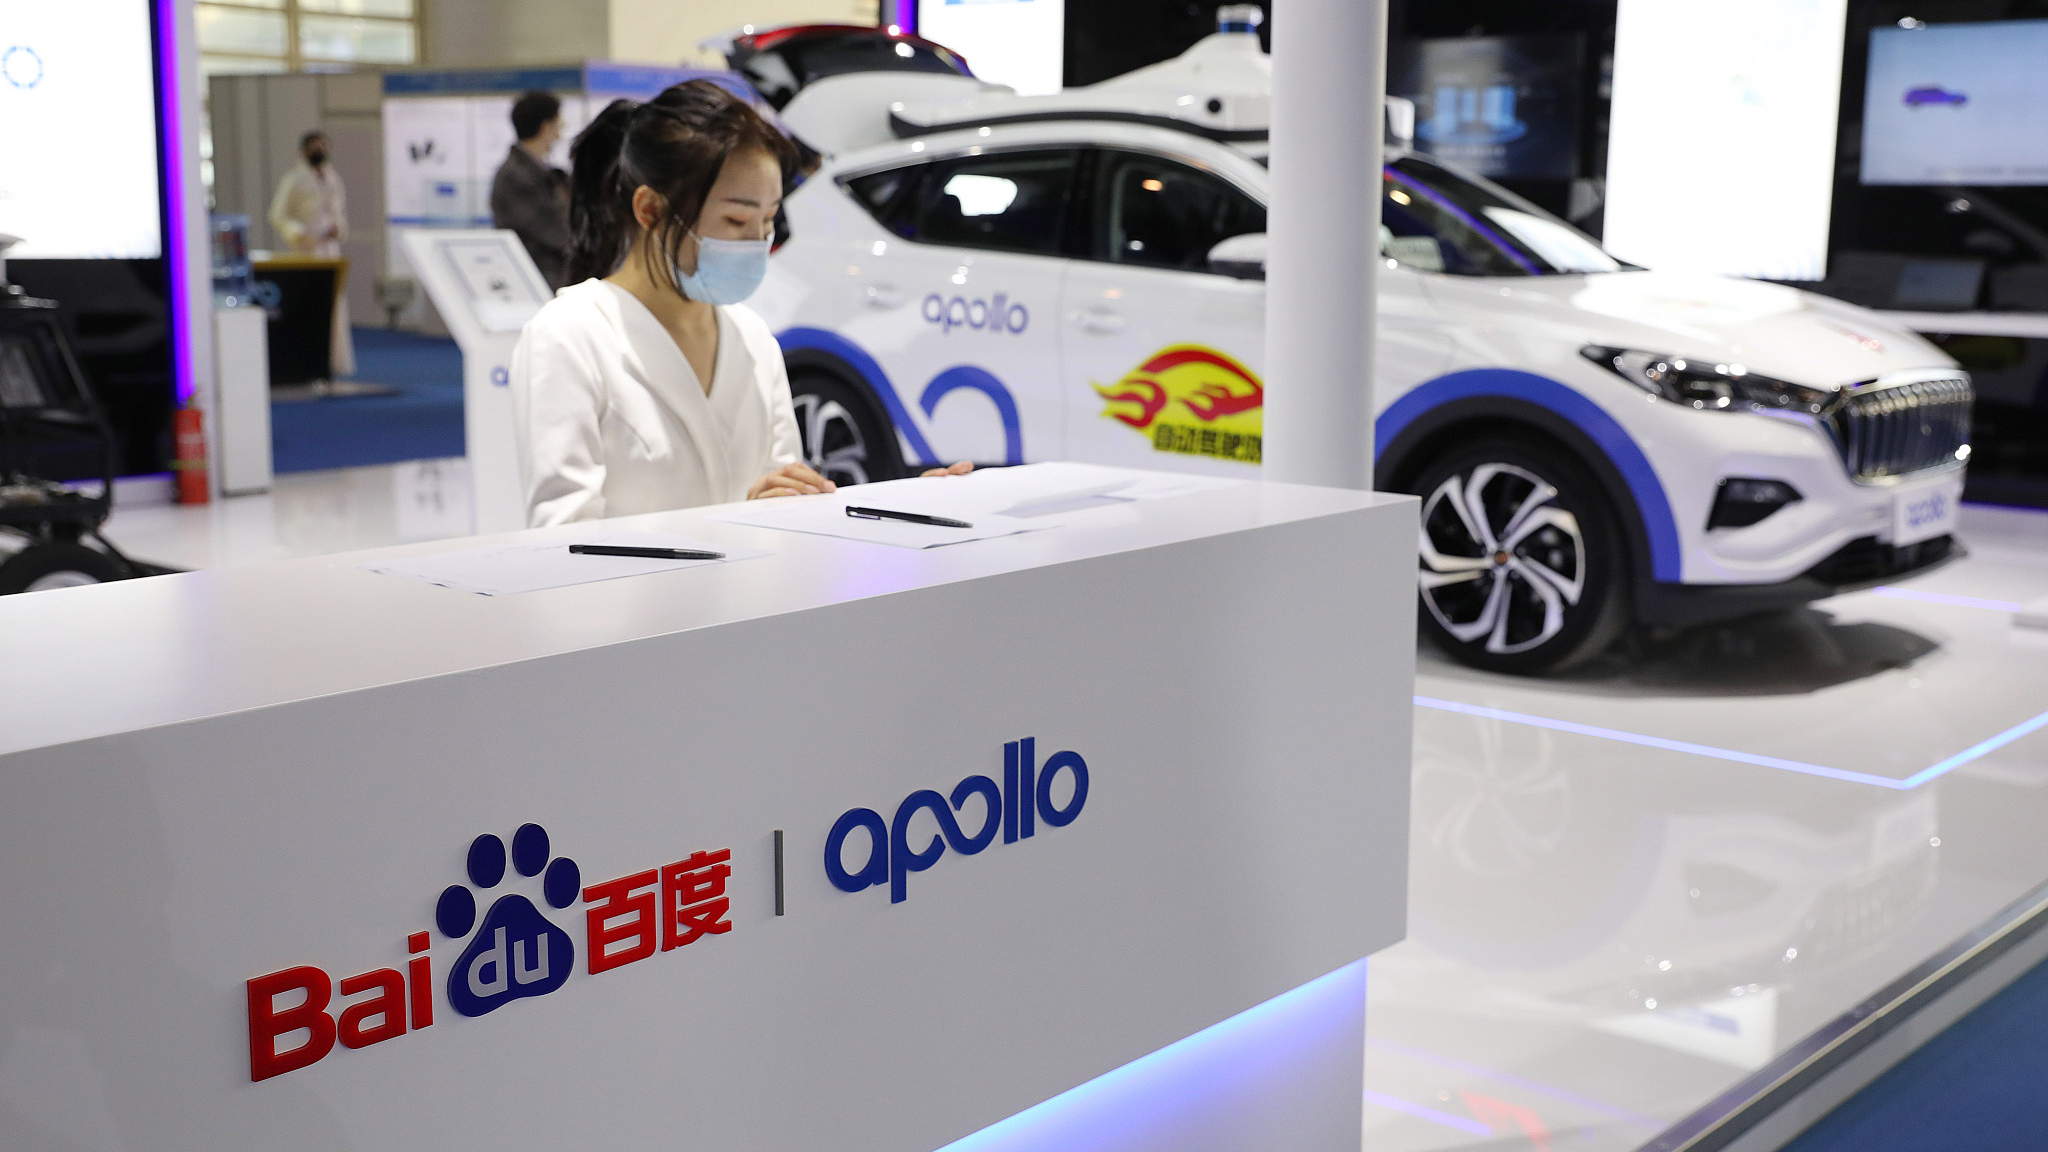 China's Baidu meets expectation in Q4 revenue, helped by AI development